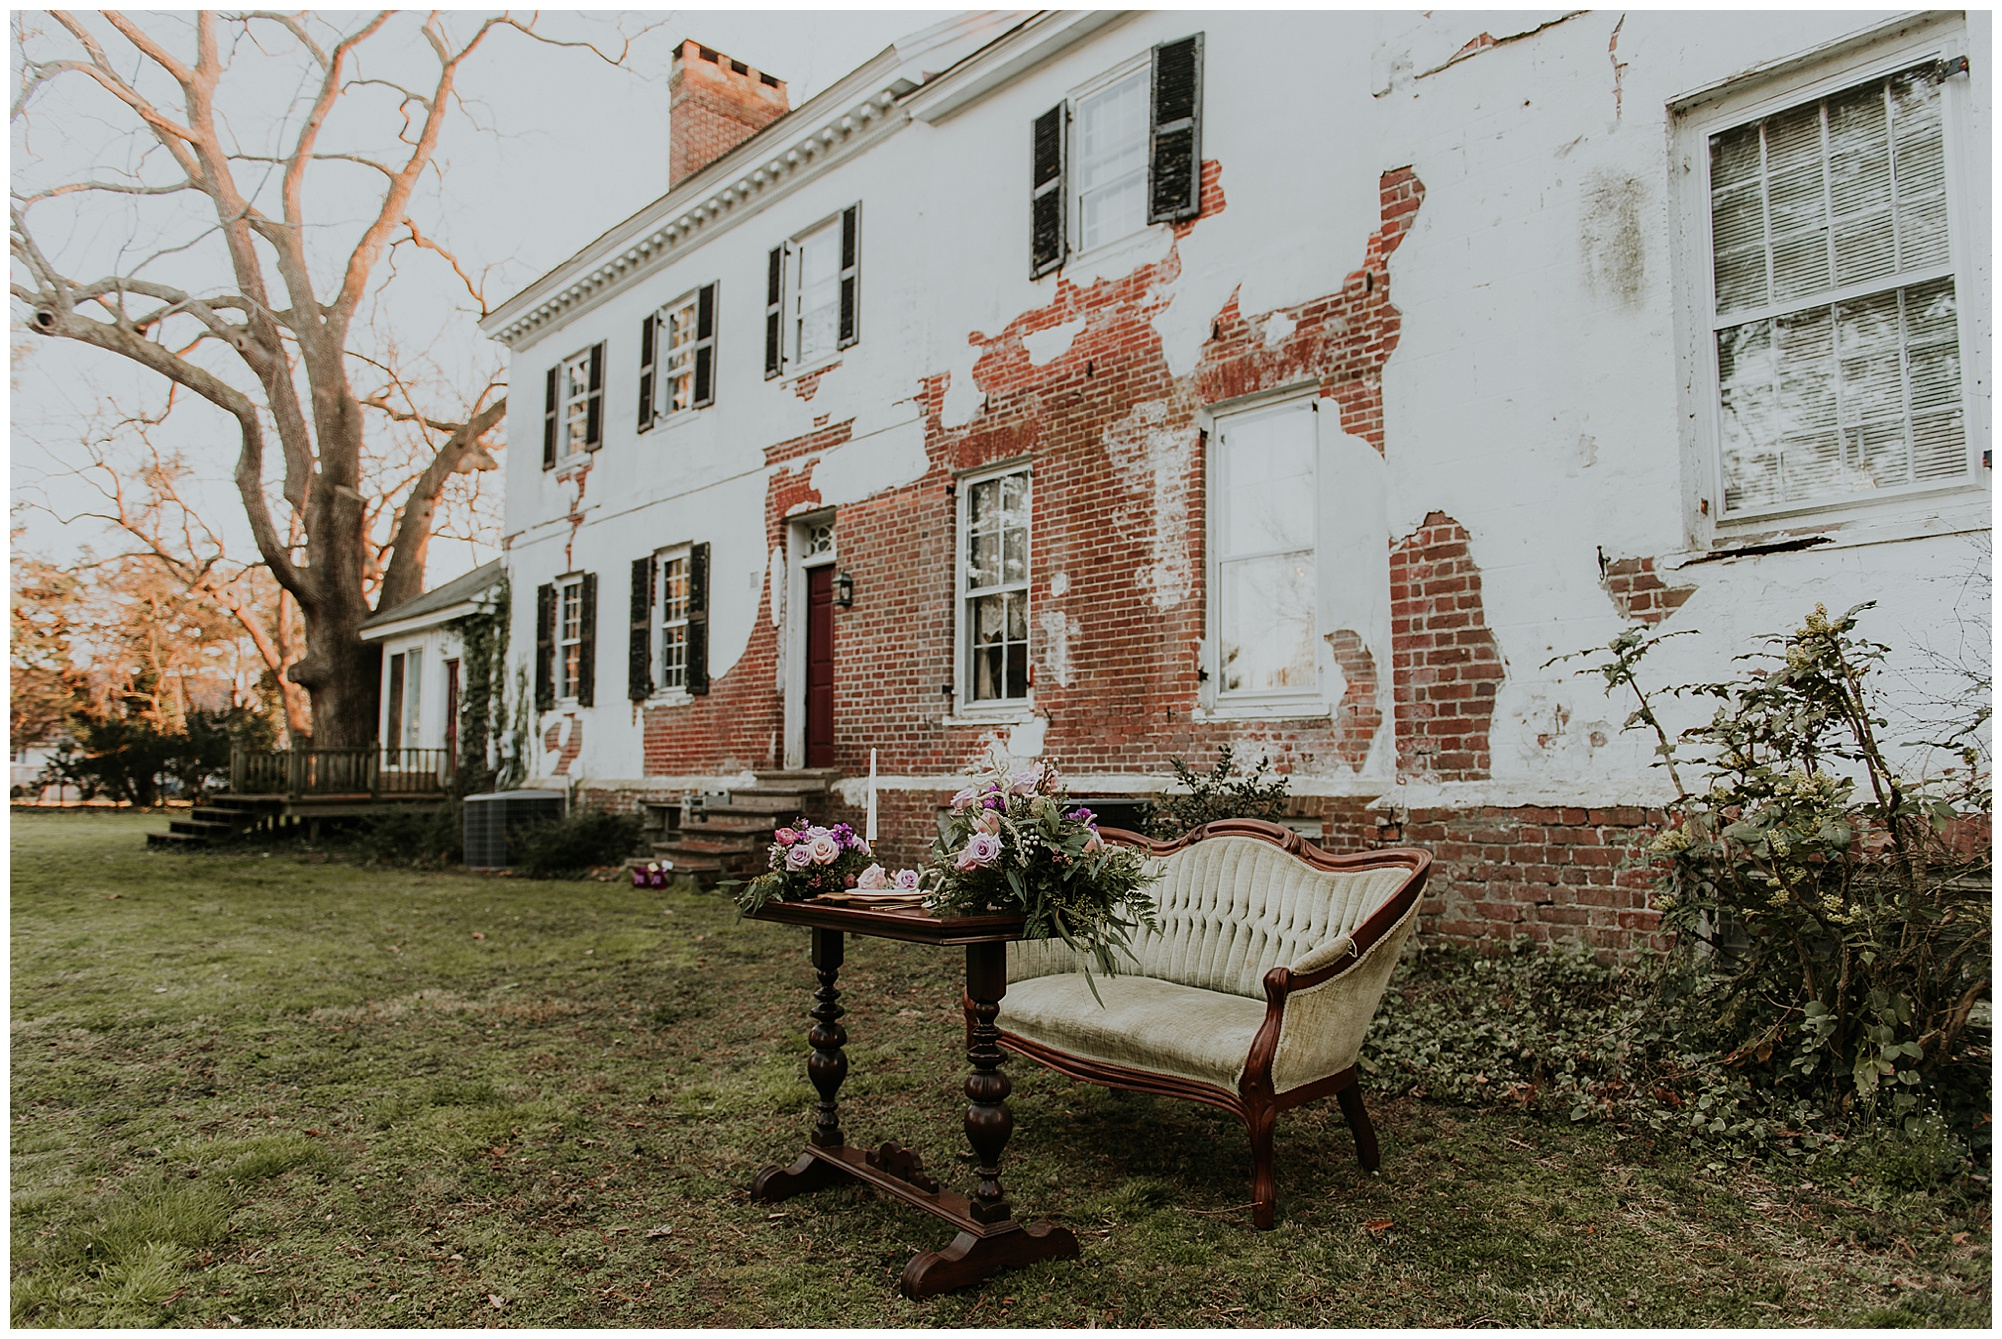 boho glam style inspo at chanceford hall wedding styled photoshoot. featured on my eastern shore wedding. vintage style lounge seating area outdoors at historic maryland venue.